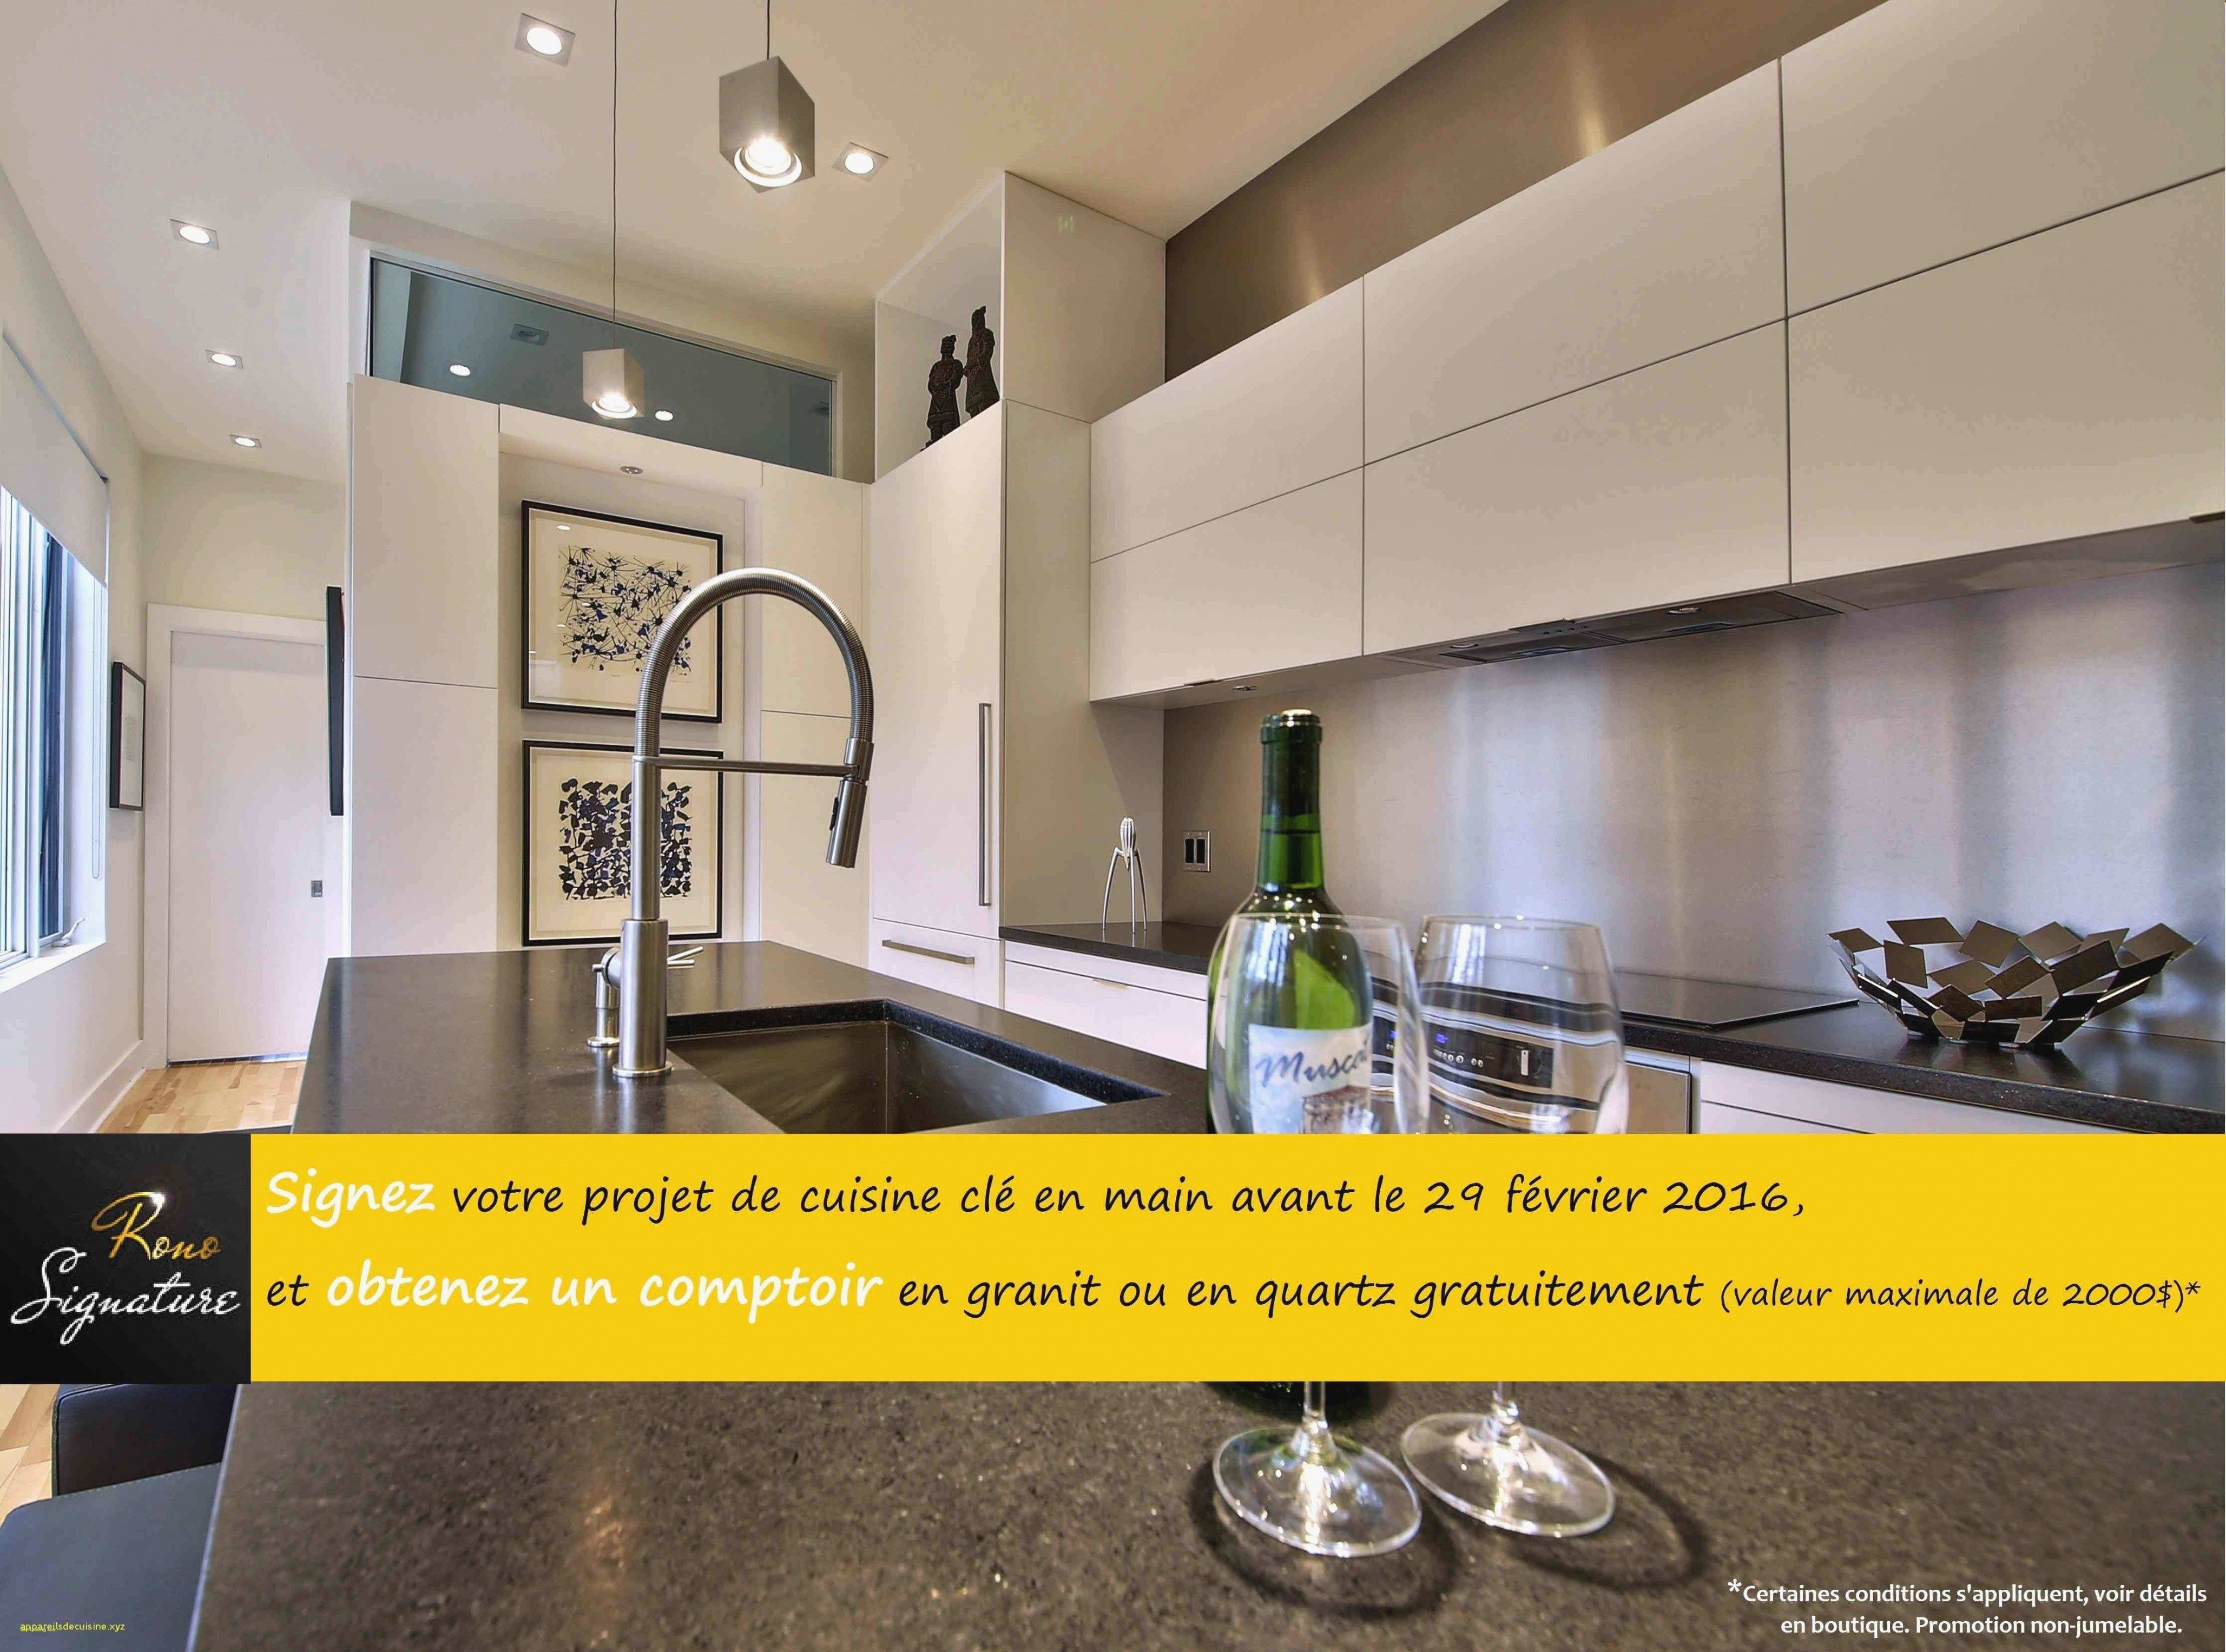 Best Of Cuisine Ultra Design  Free house plan software, Free